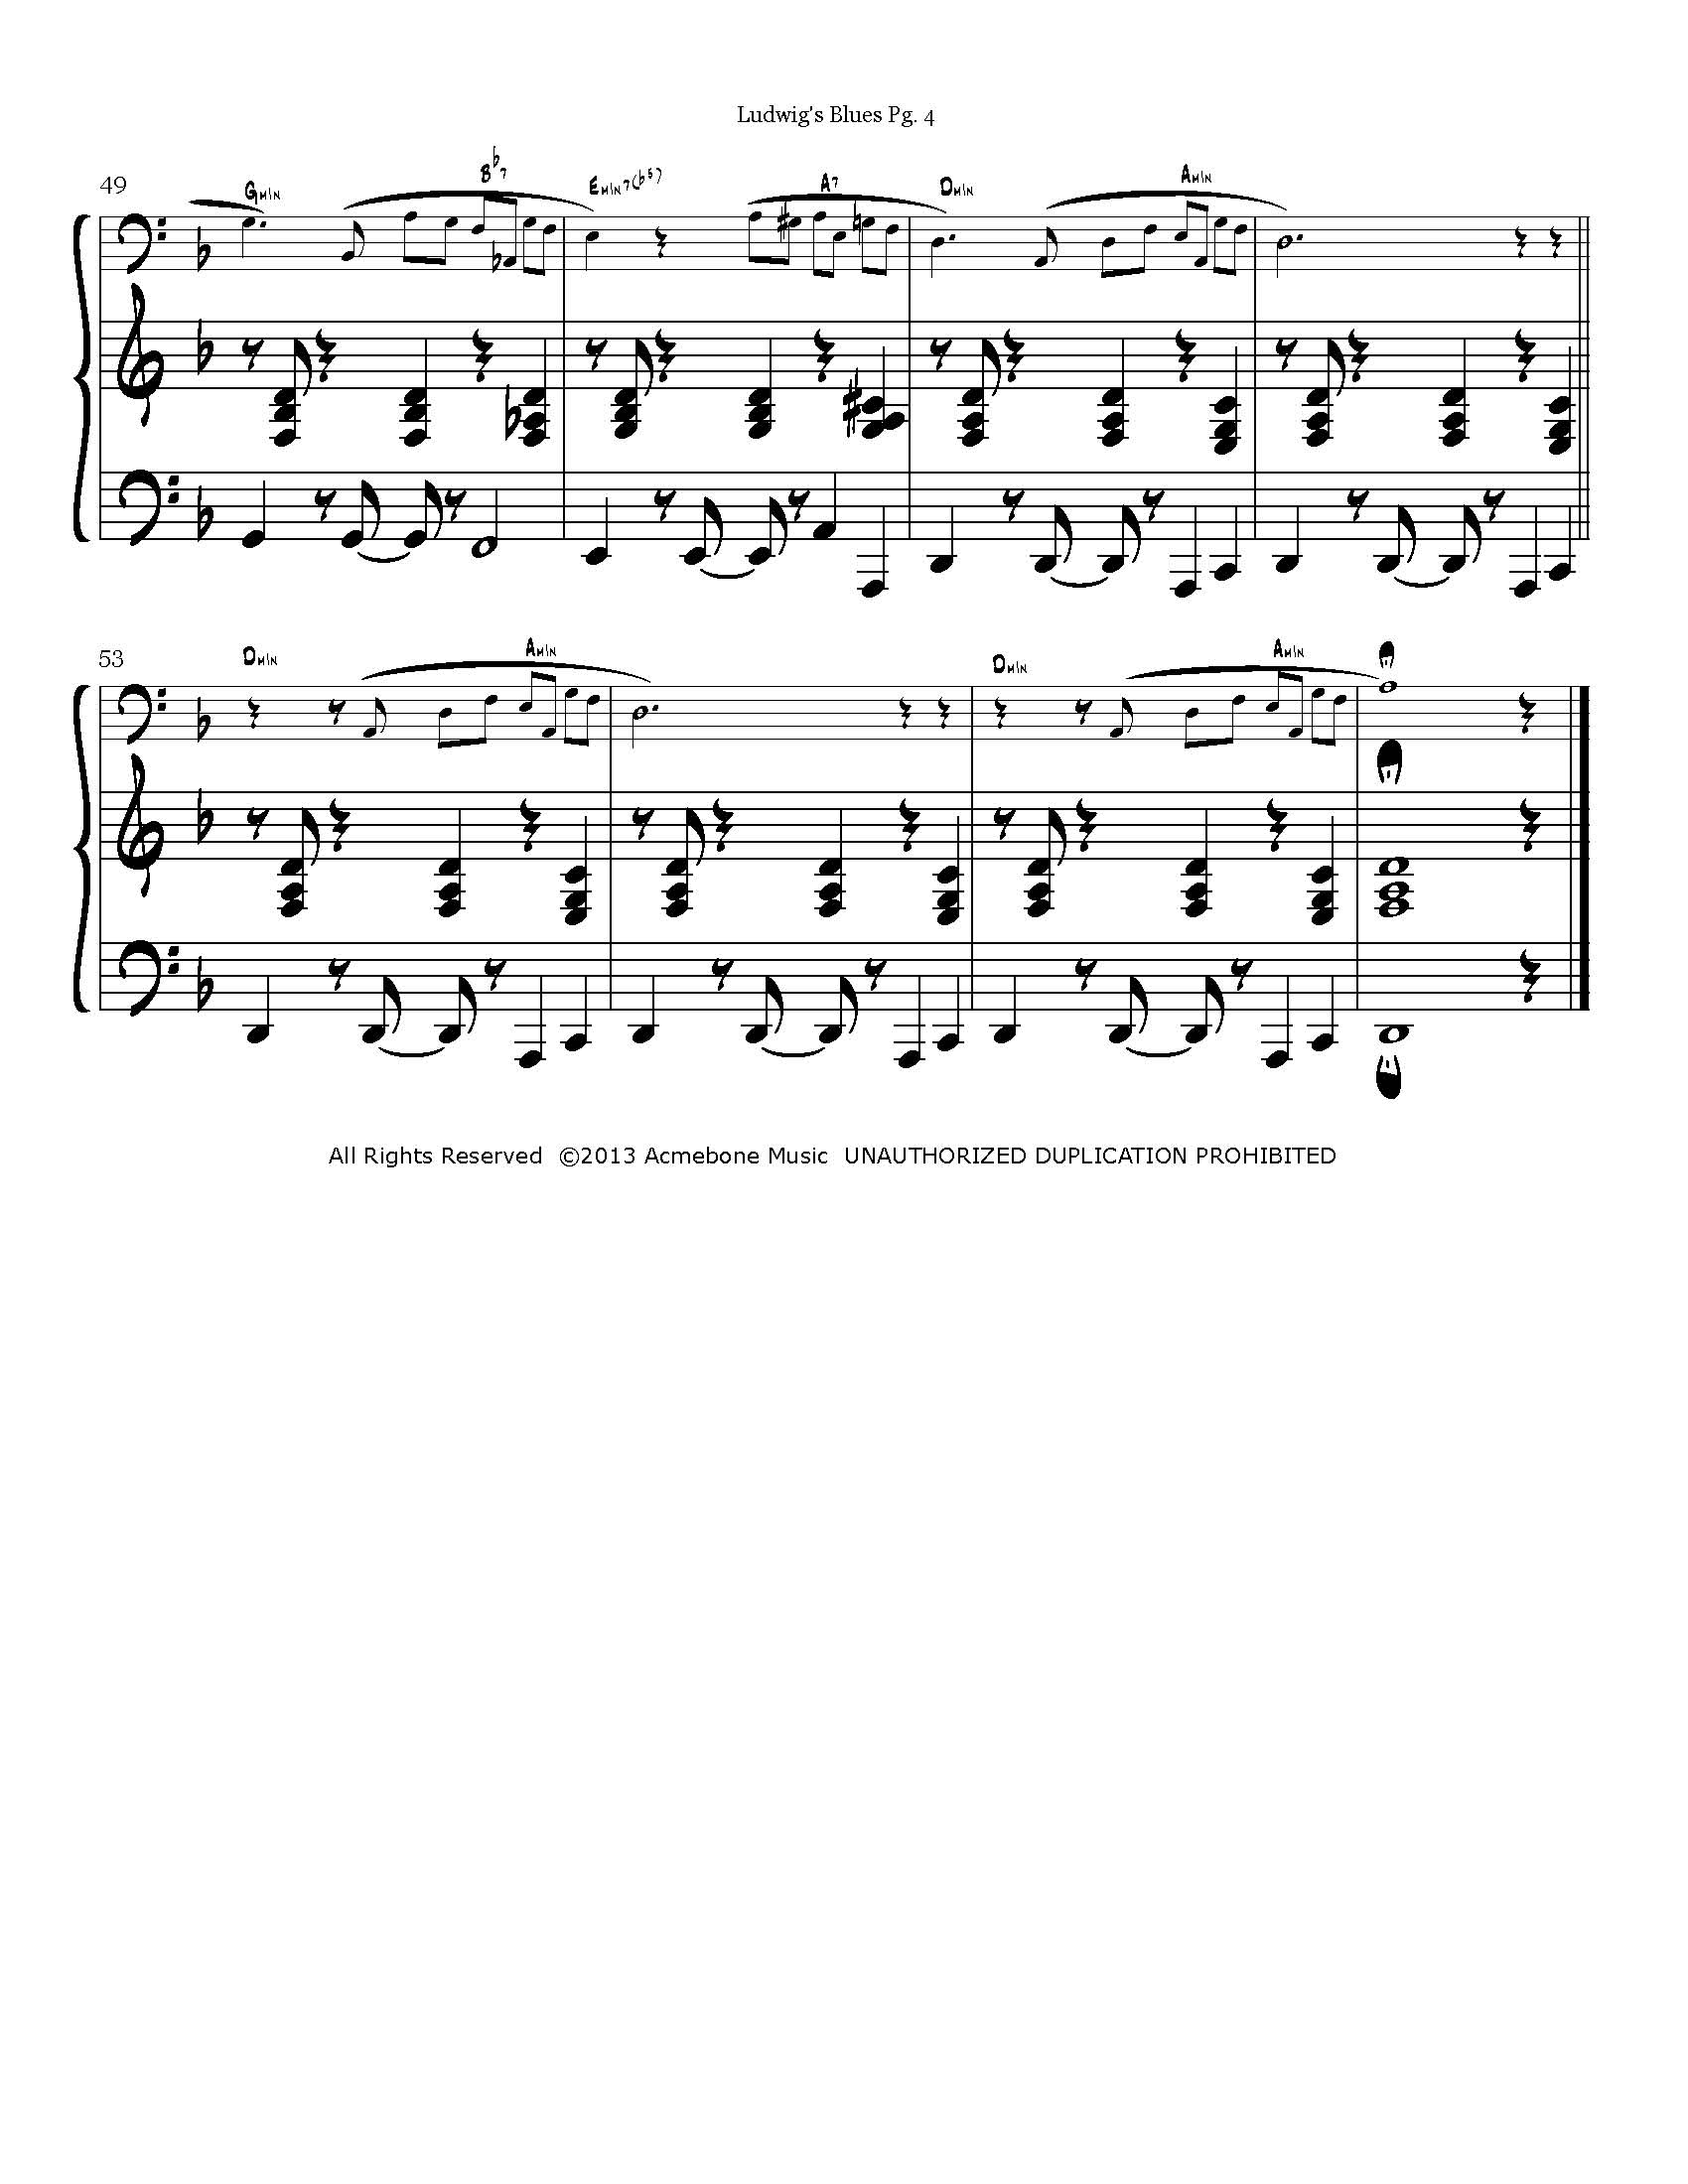 Ludwig's Blues_download_from_acmebone.com_Page_7.jpg